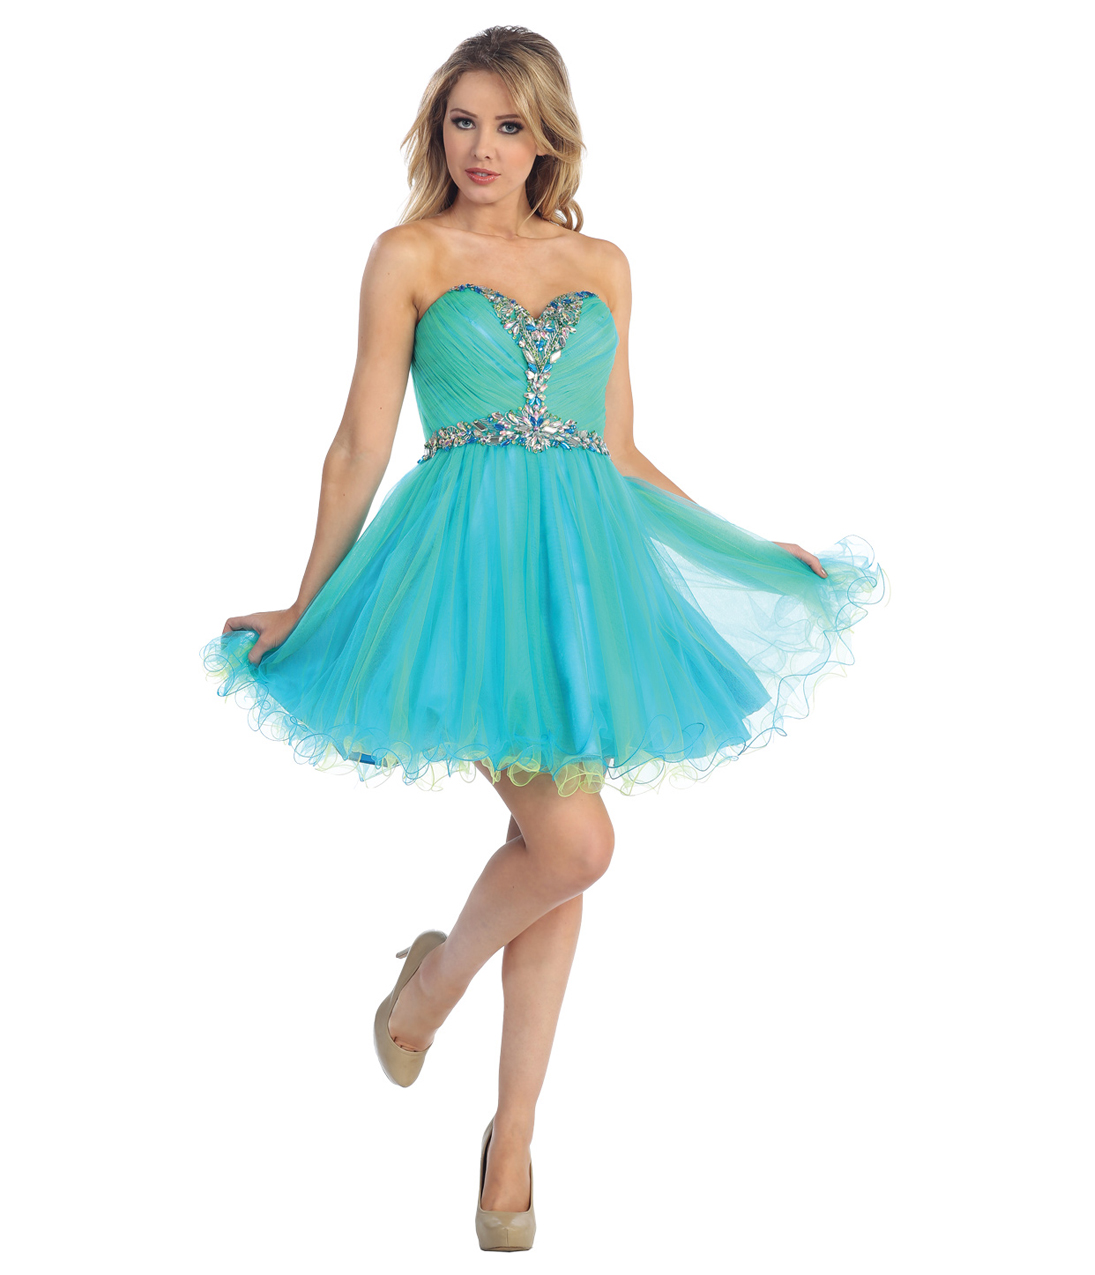 Turquoise Prom Dresses Under 160 - Prom Dresses With Pockets